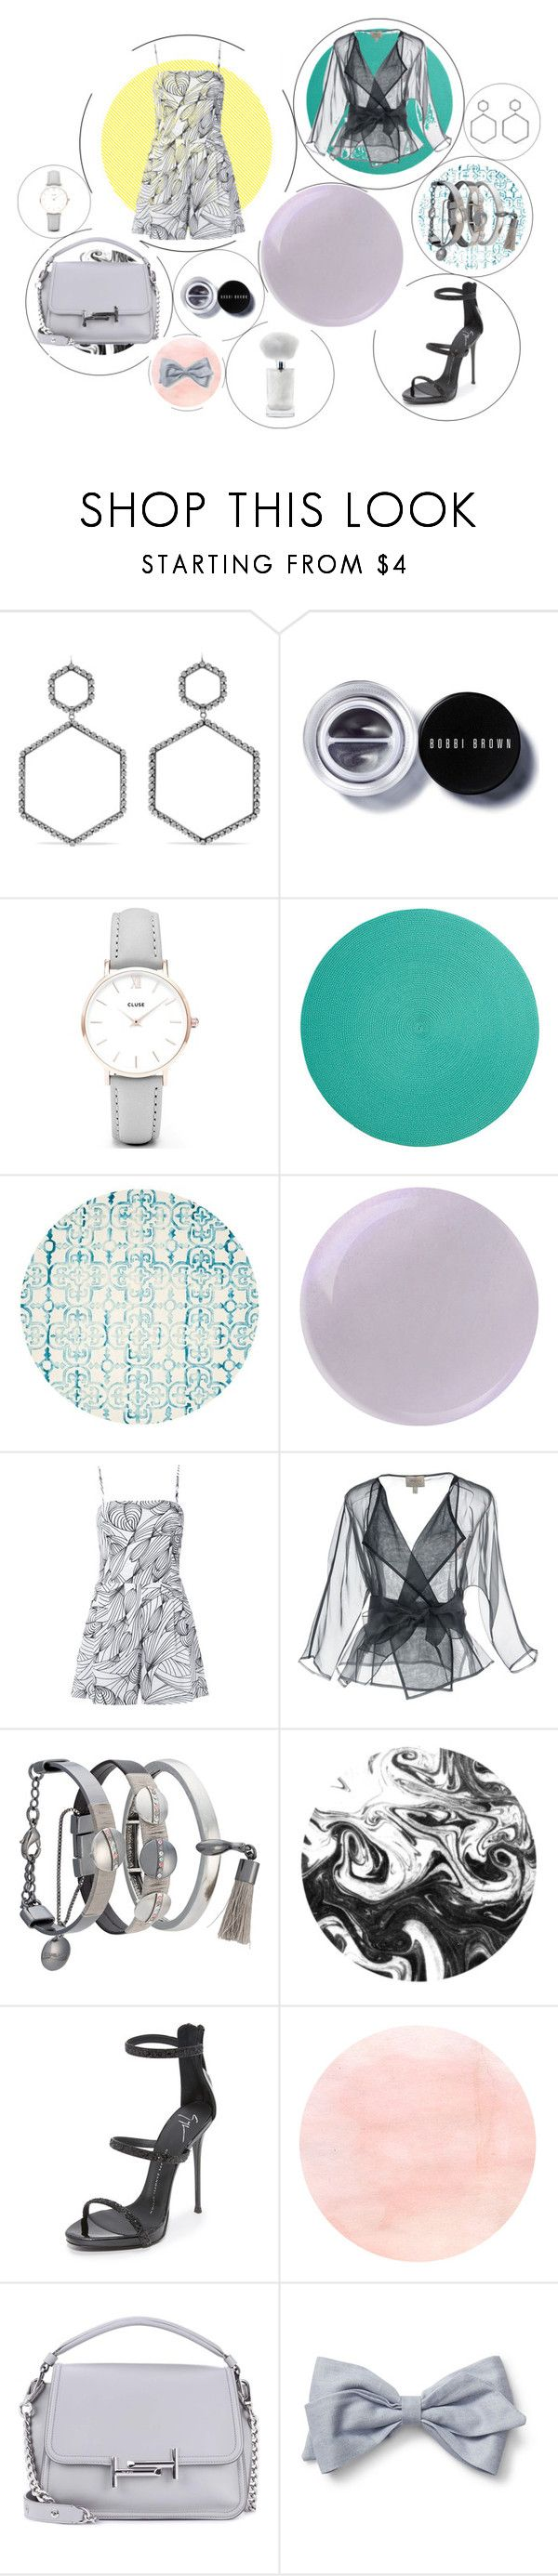 """""""In Circles"""" by tilarids ❤ liked on Polyvore featuring Isabel Marant, Bobbi Brown Cosmetics, CLUSE, Deborah Rhodes, Safavieh, Isolda, Armani Collezioni, Camila Klein, Giuseppe Zanotti and Tod's"""